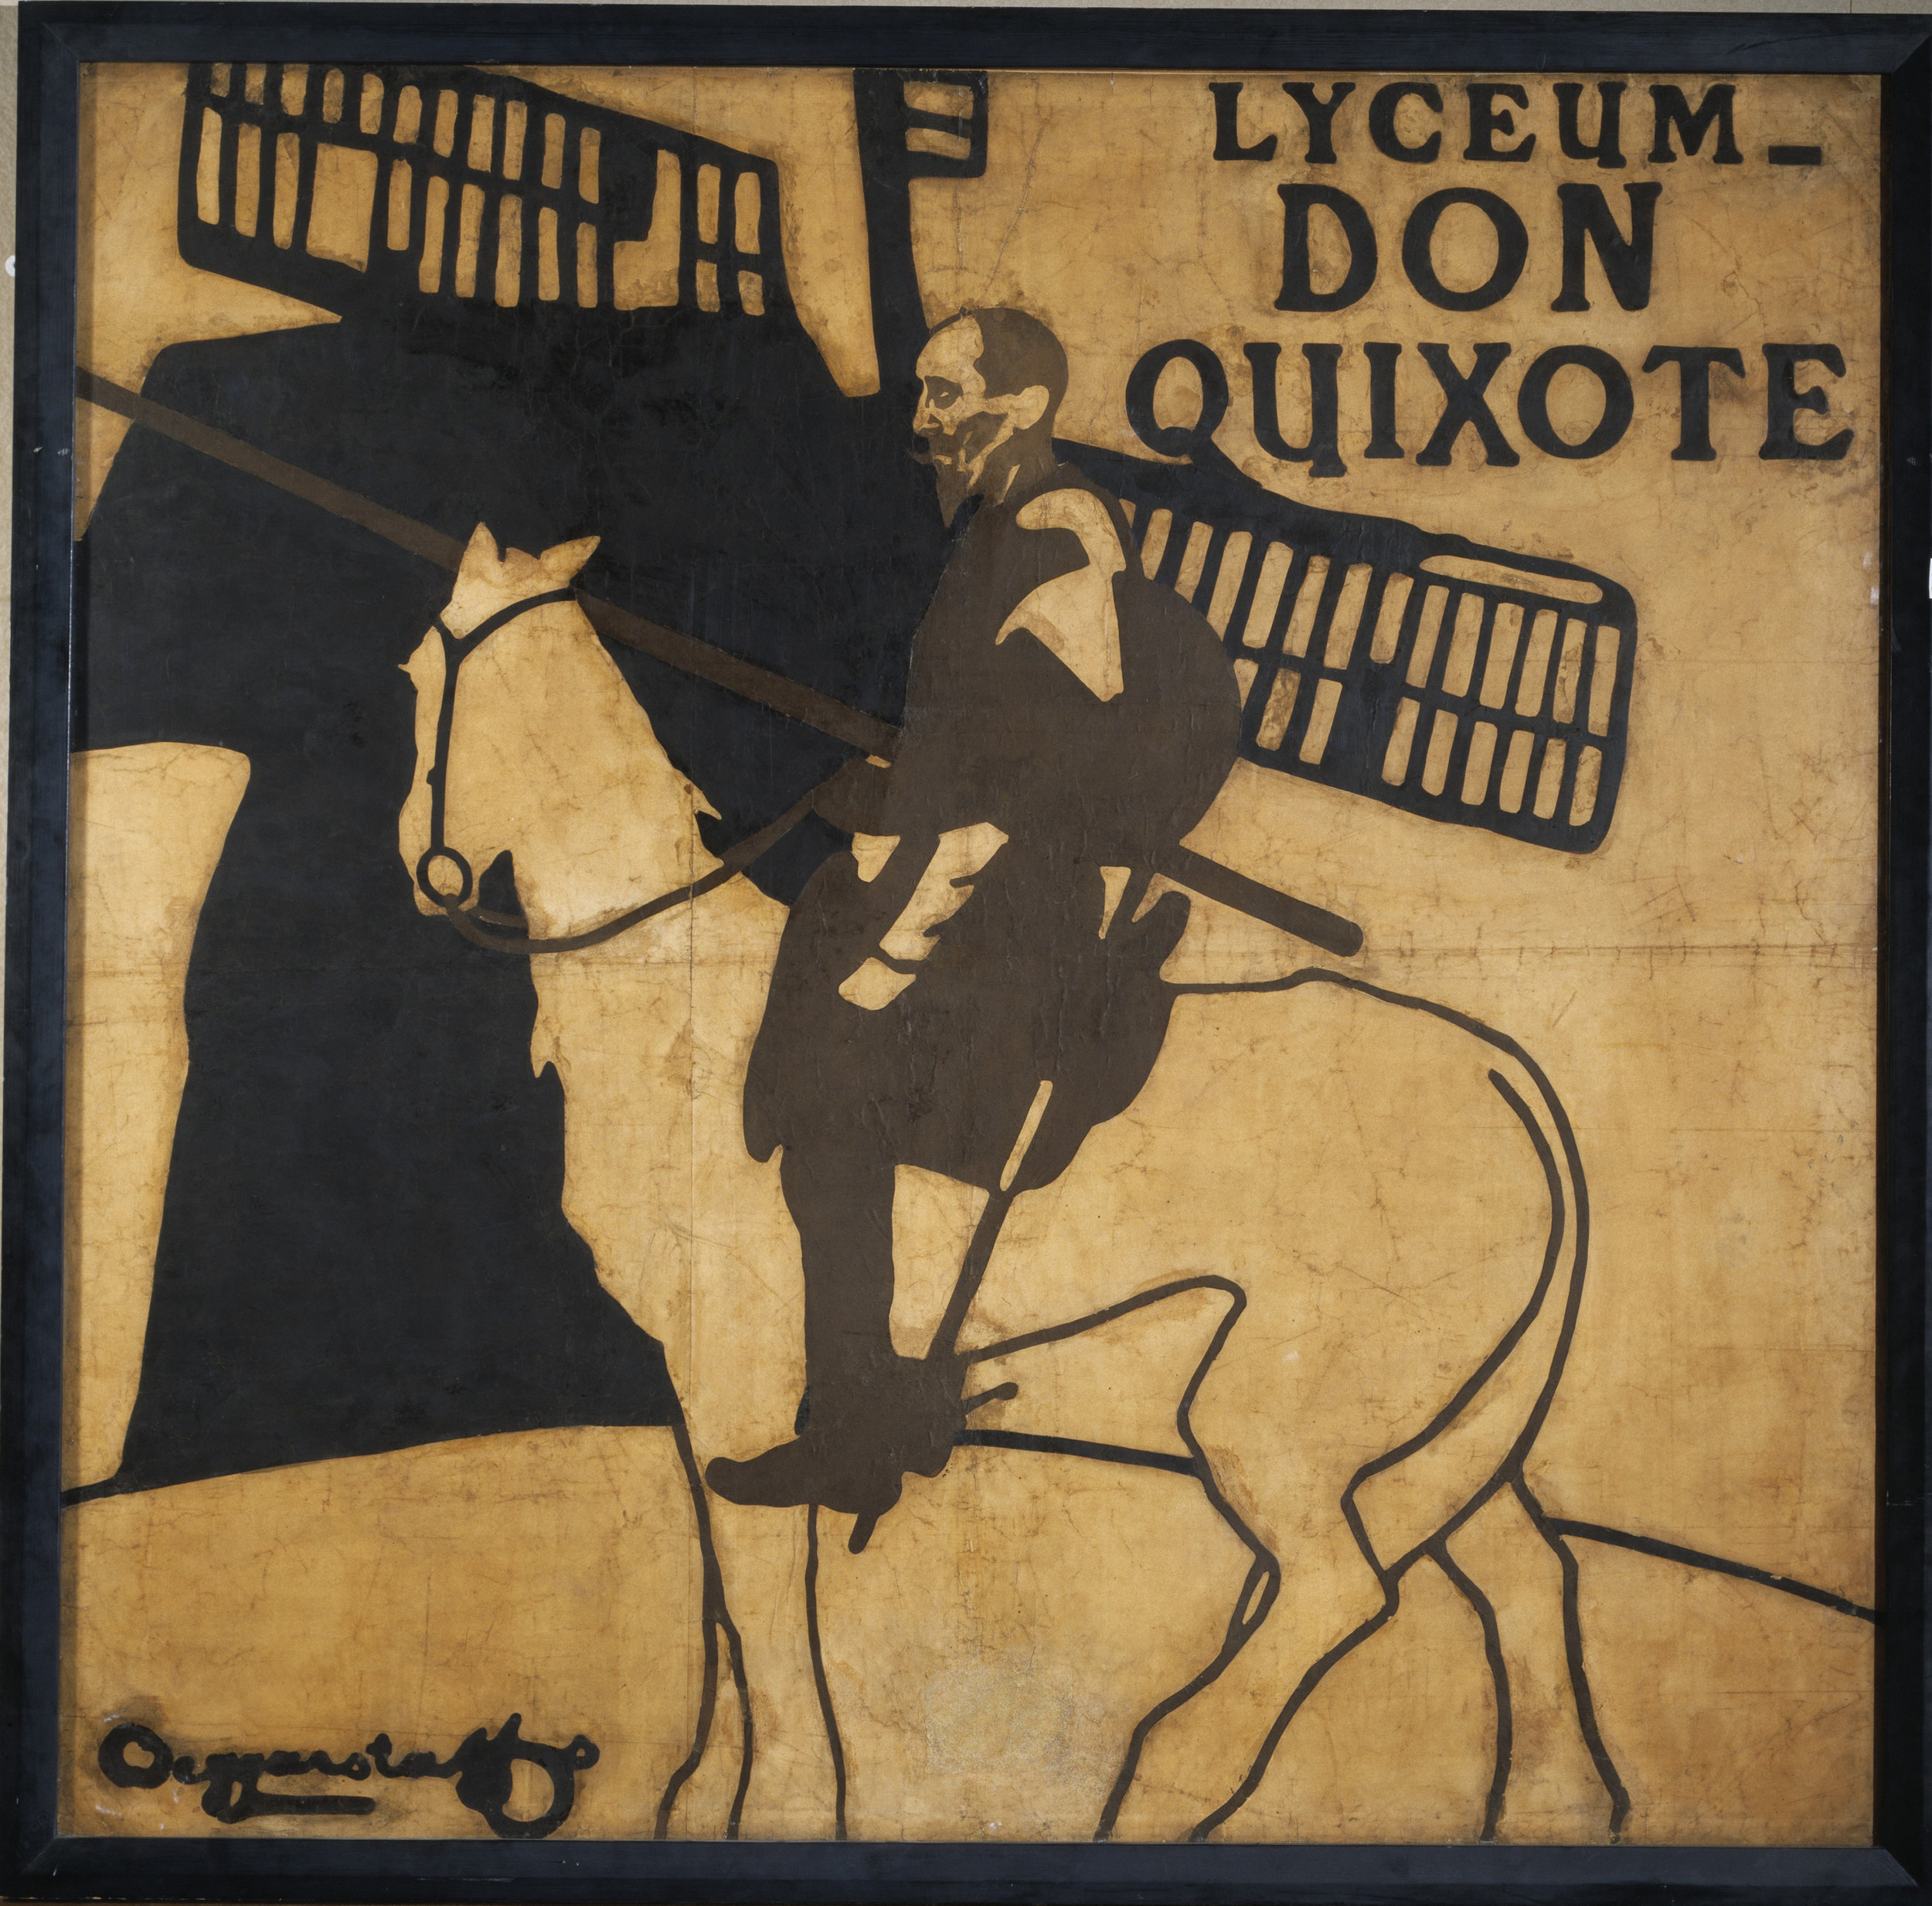 A Poster for Don Quixote the production.